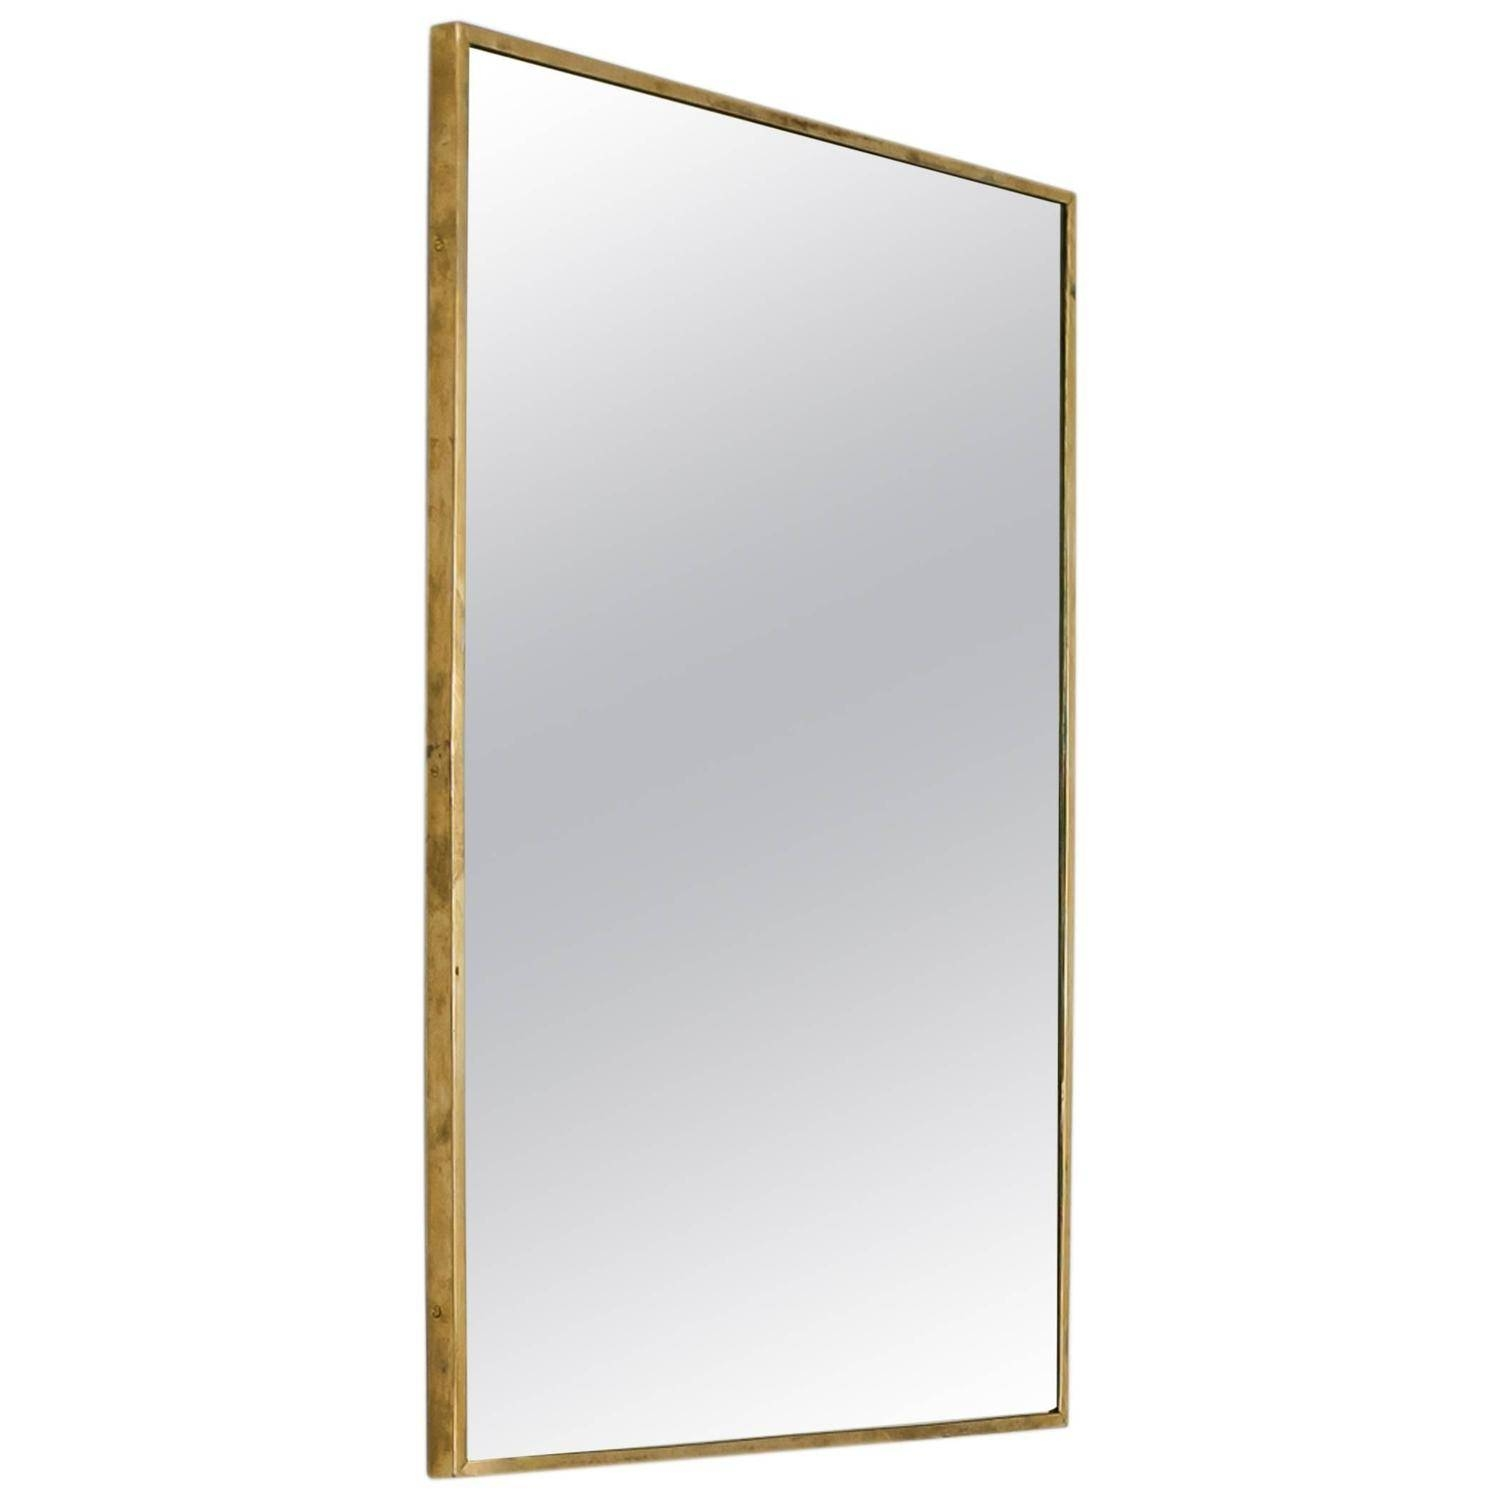 Mirror : Id F Wonderful Brass Mirrors For Sale Excellent Antique with regard to Brass Mirrors (Image 13 of 15)